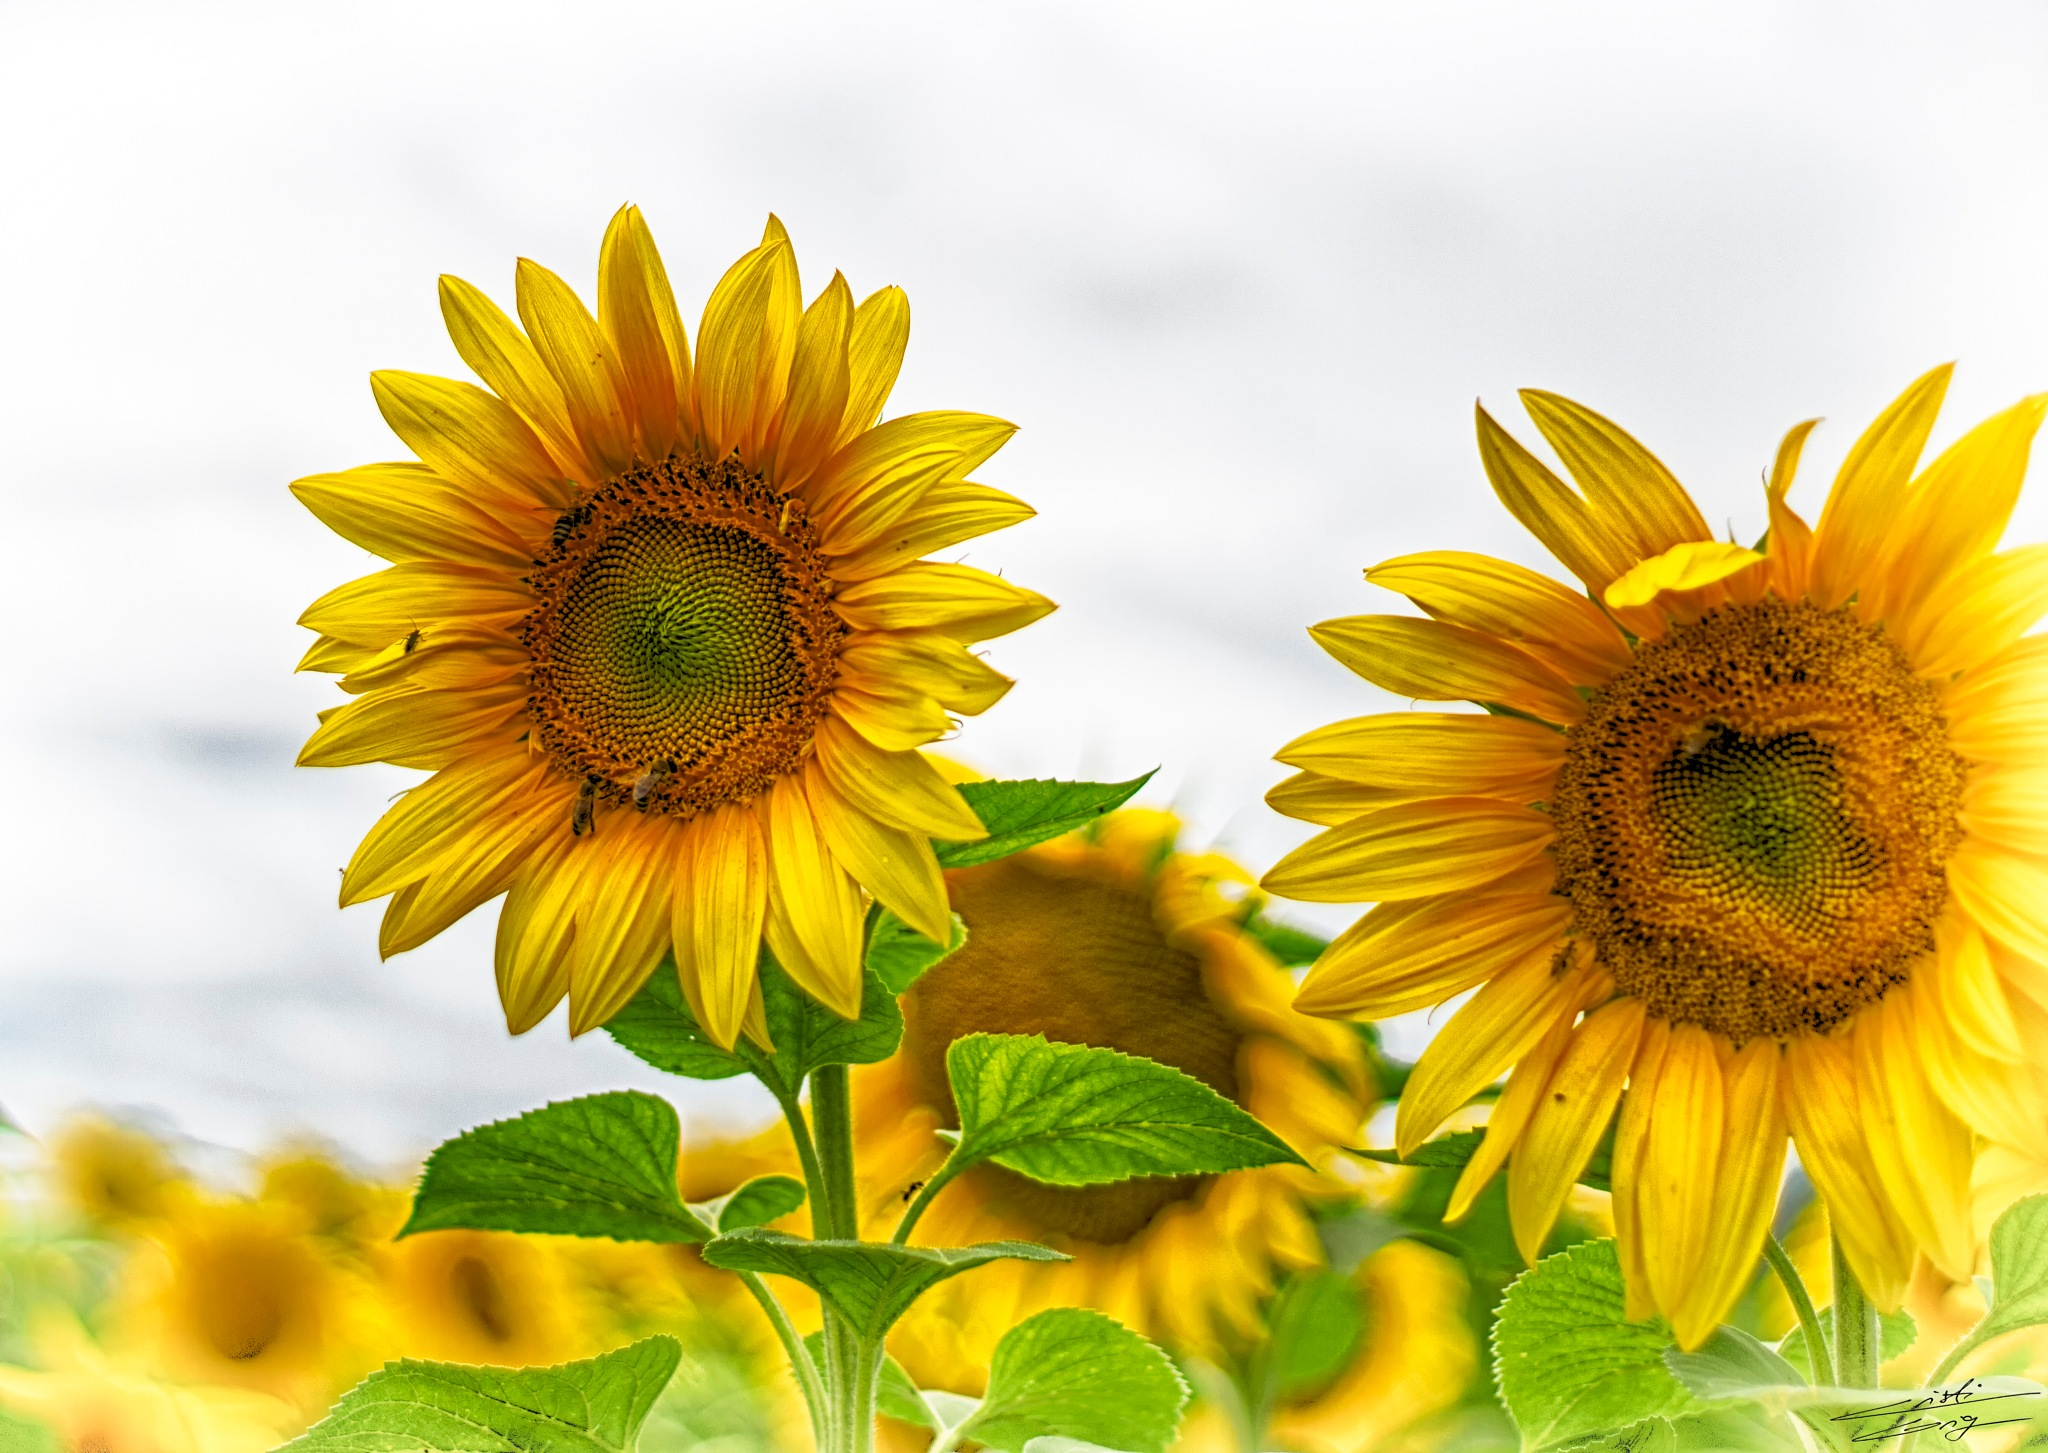 Sunflower by Cristi Grig